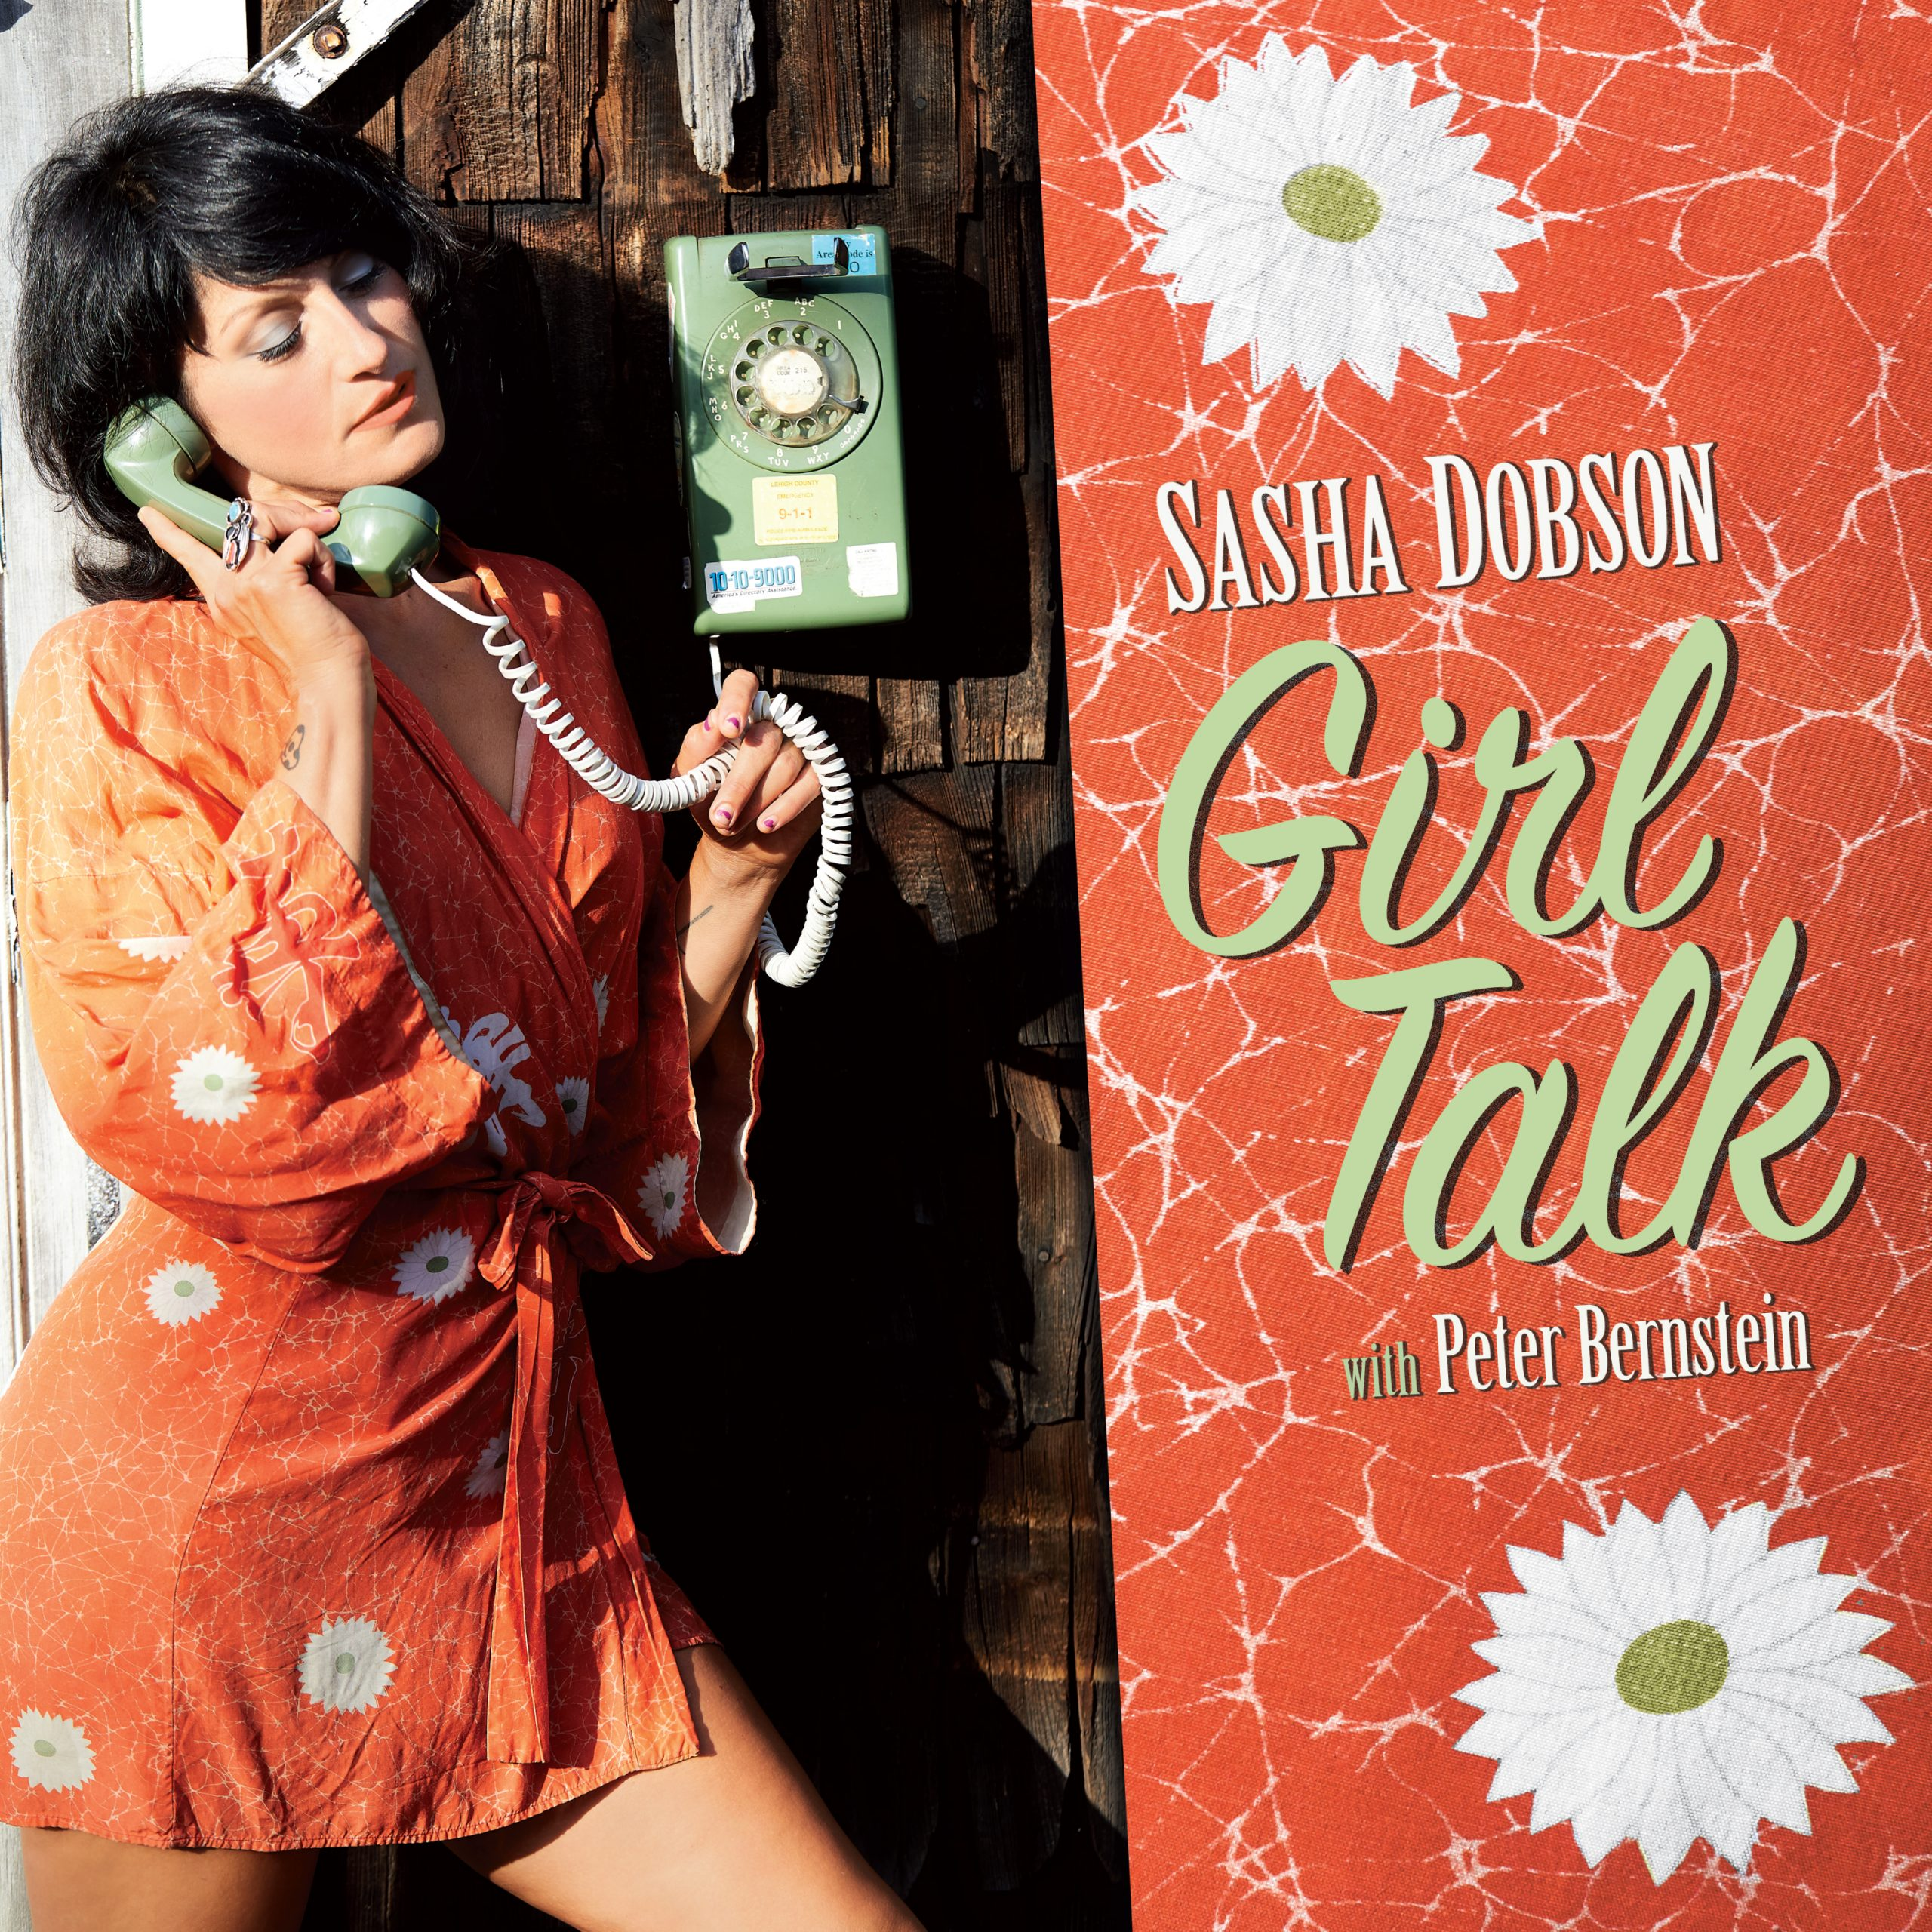 NEW RELEASE: Sasha Dobson's GIRL TALK is out September 10, 2021